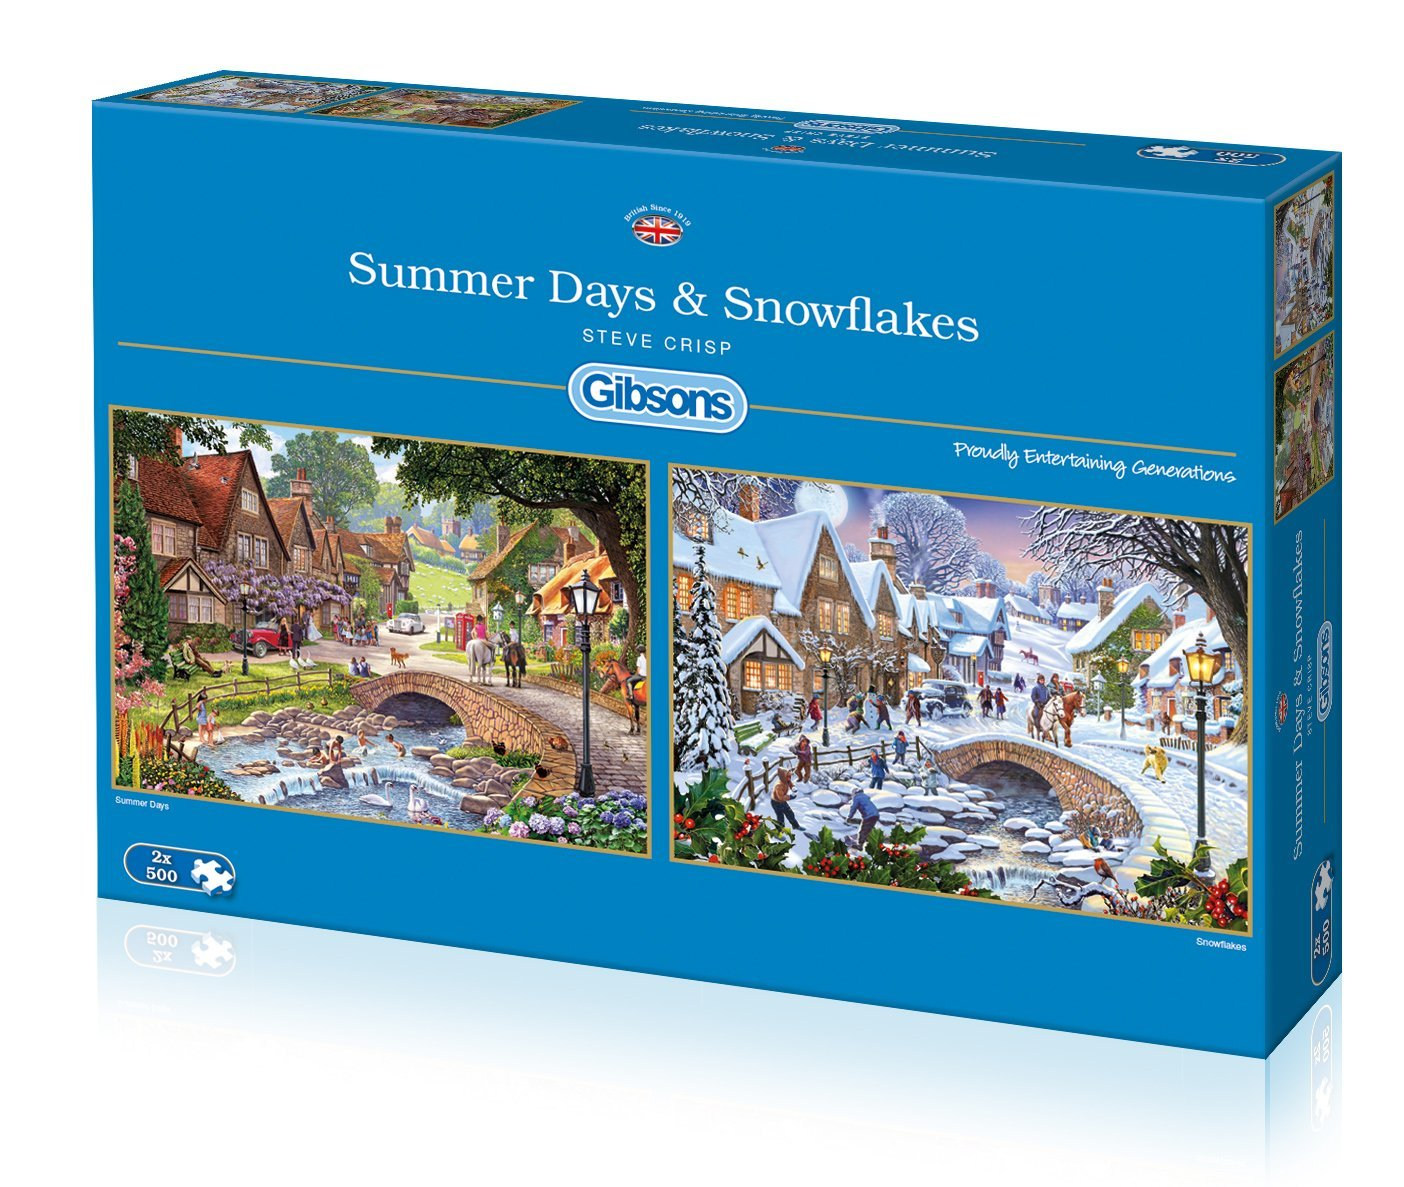 gibsons-2-puzzles-steve-crisp-summer-days-snowflakes-500-teile-puzzle-gibsons-g5045